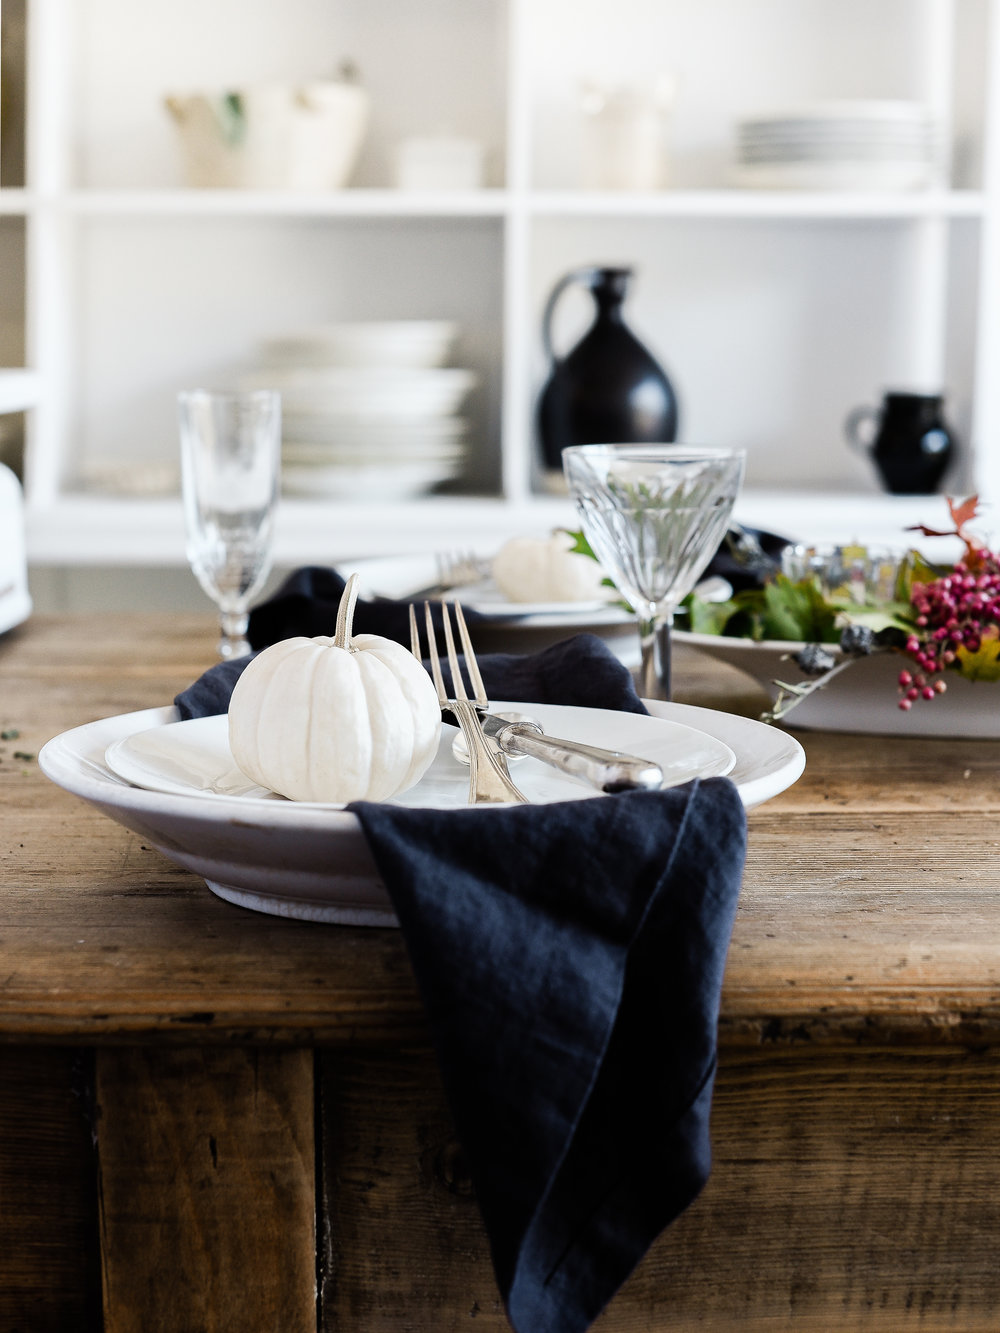 Pretty fall tabletop ideas for Thanksgiving with white mini pumpkins.